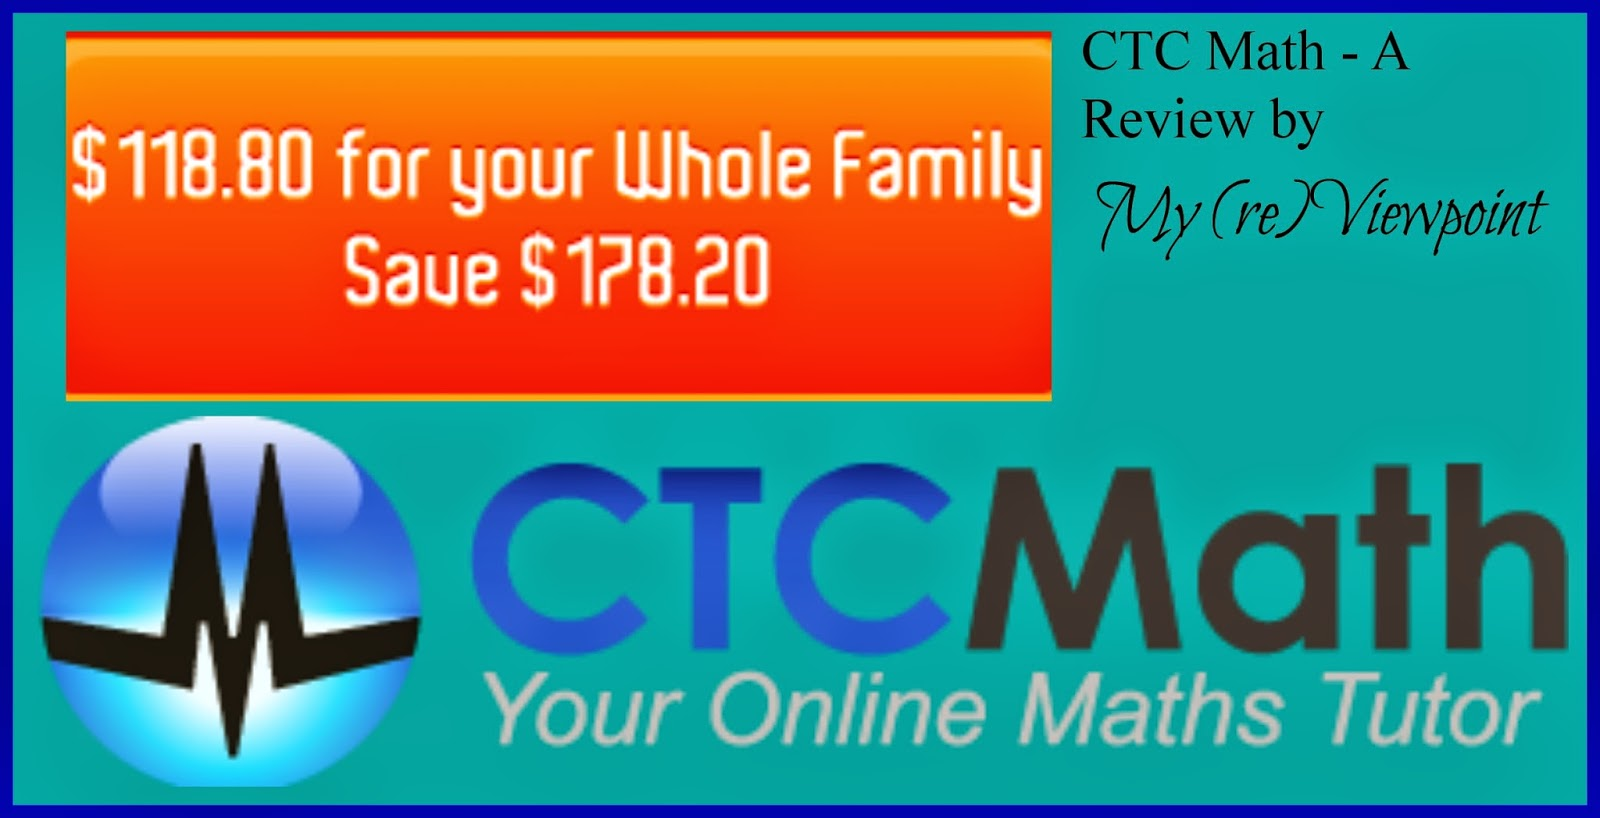 My (re)Viewpoint: Review of CTCMath